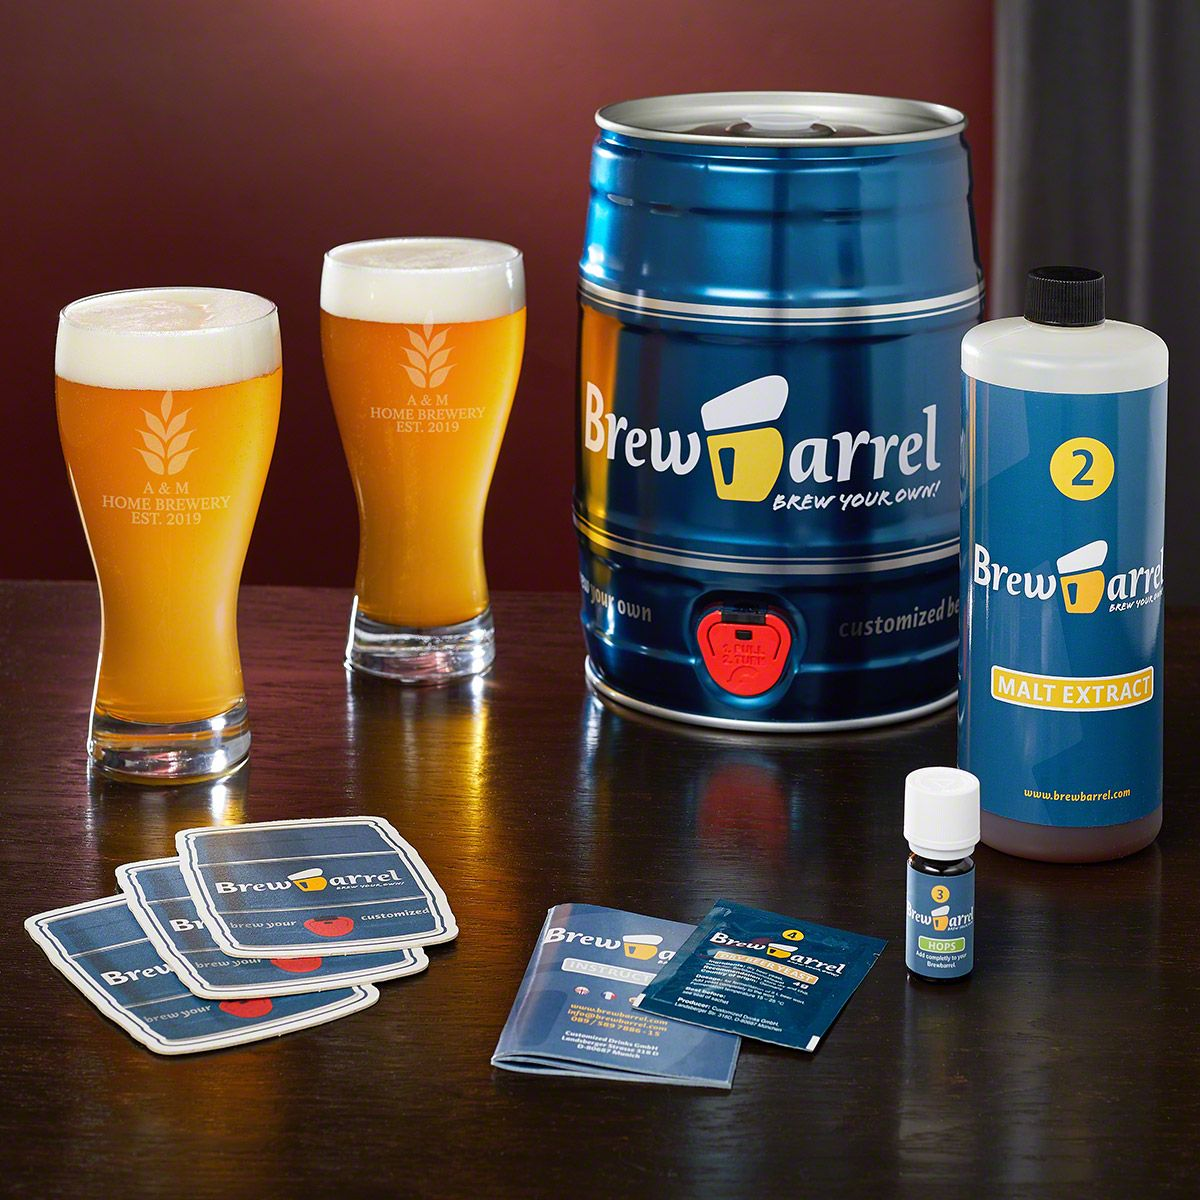 Naturally Brewed Beer Making Kit with Engraved Pilsner Glasses